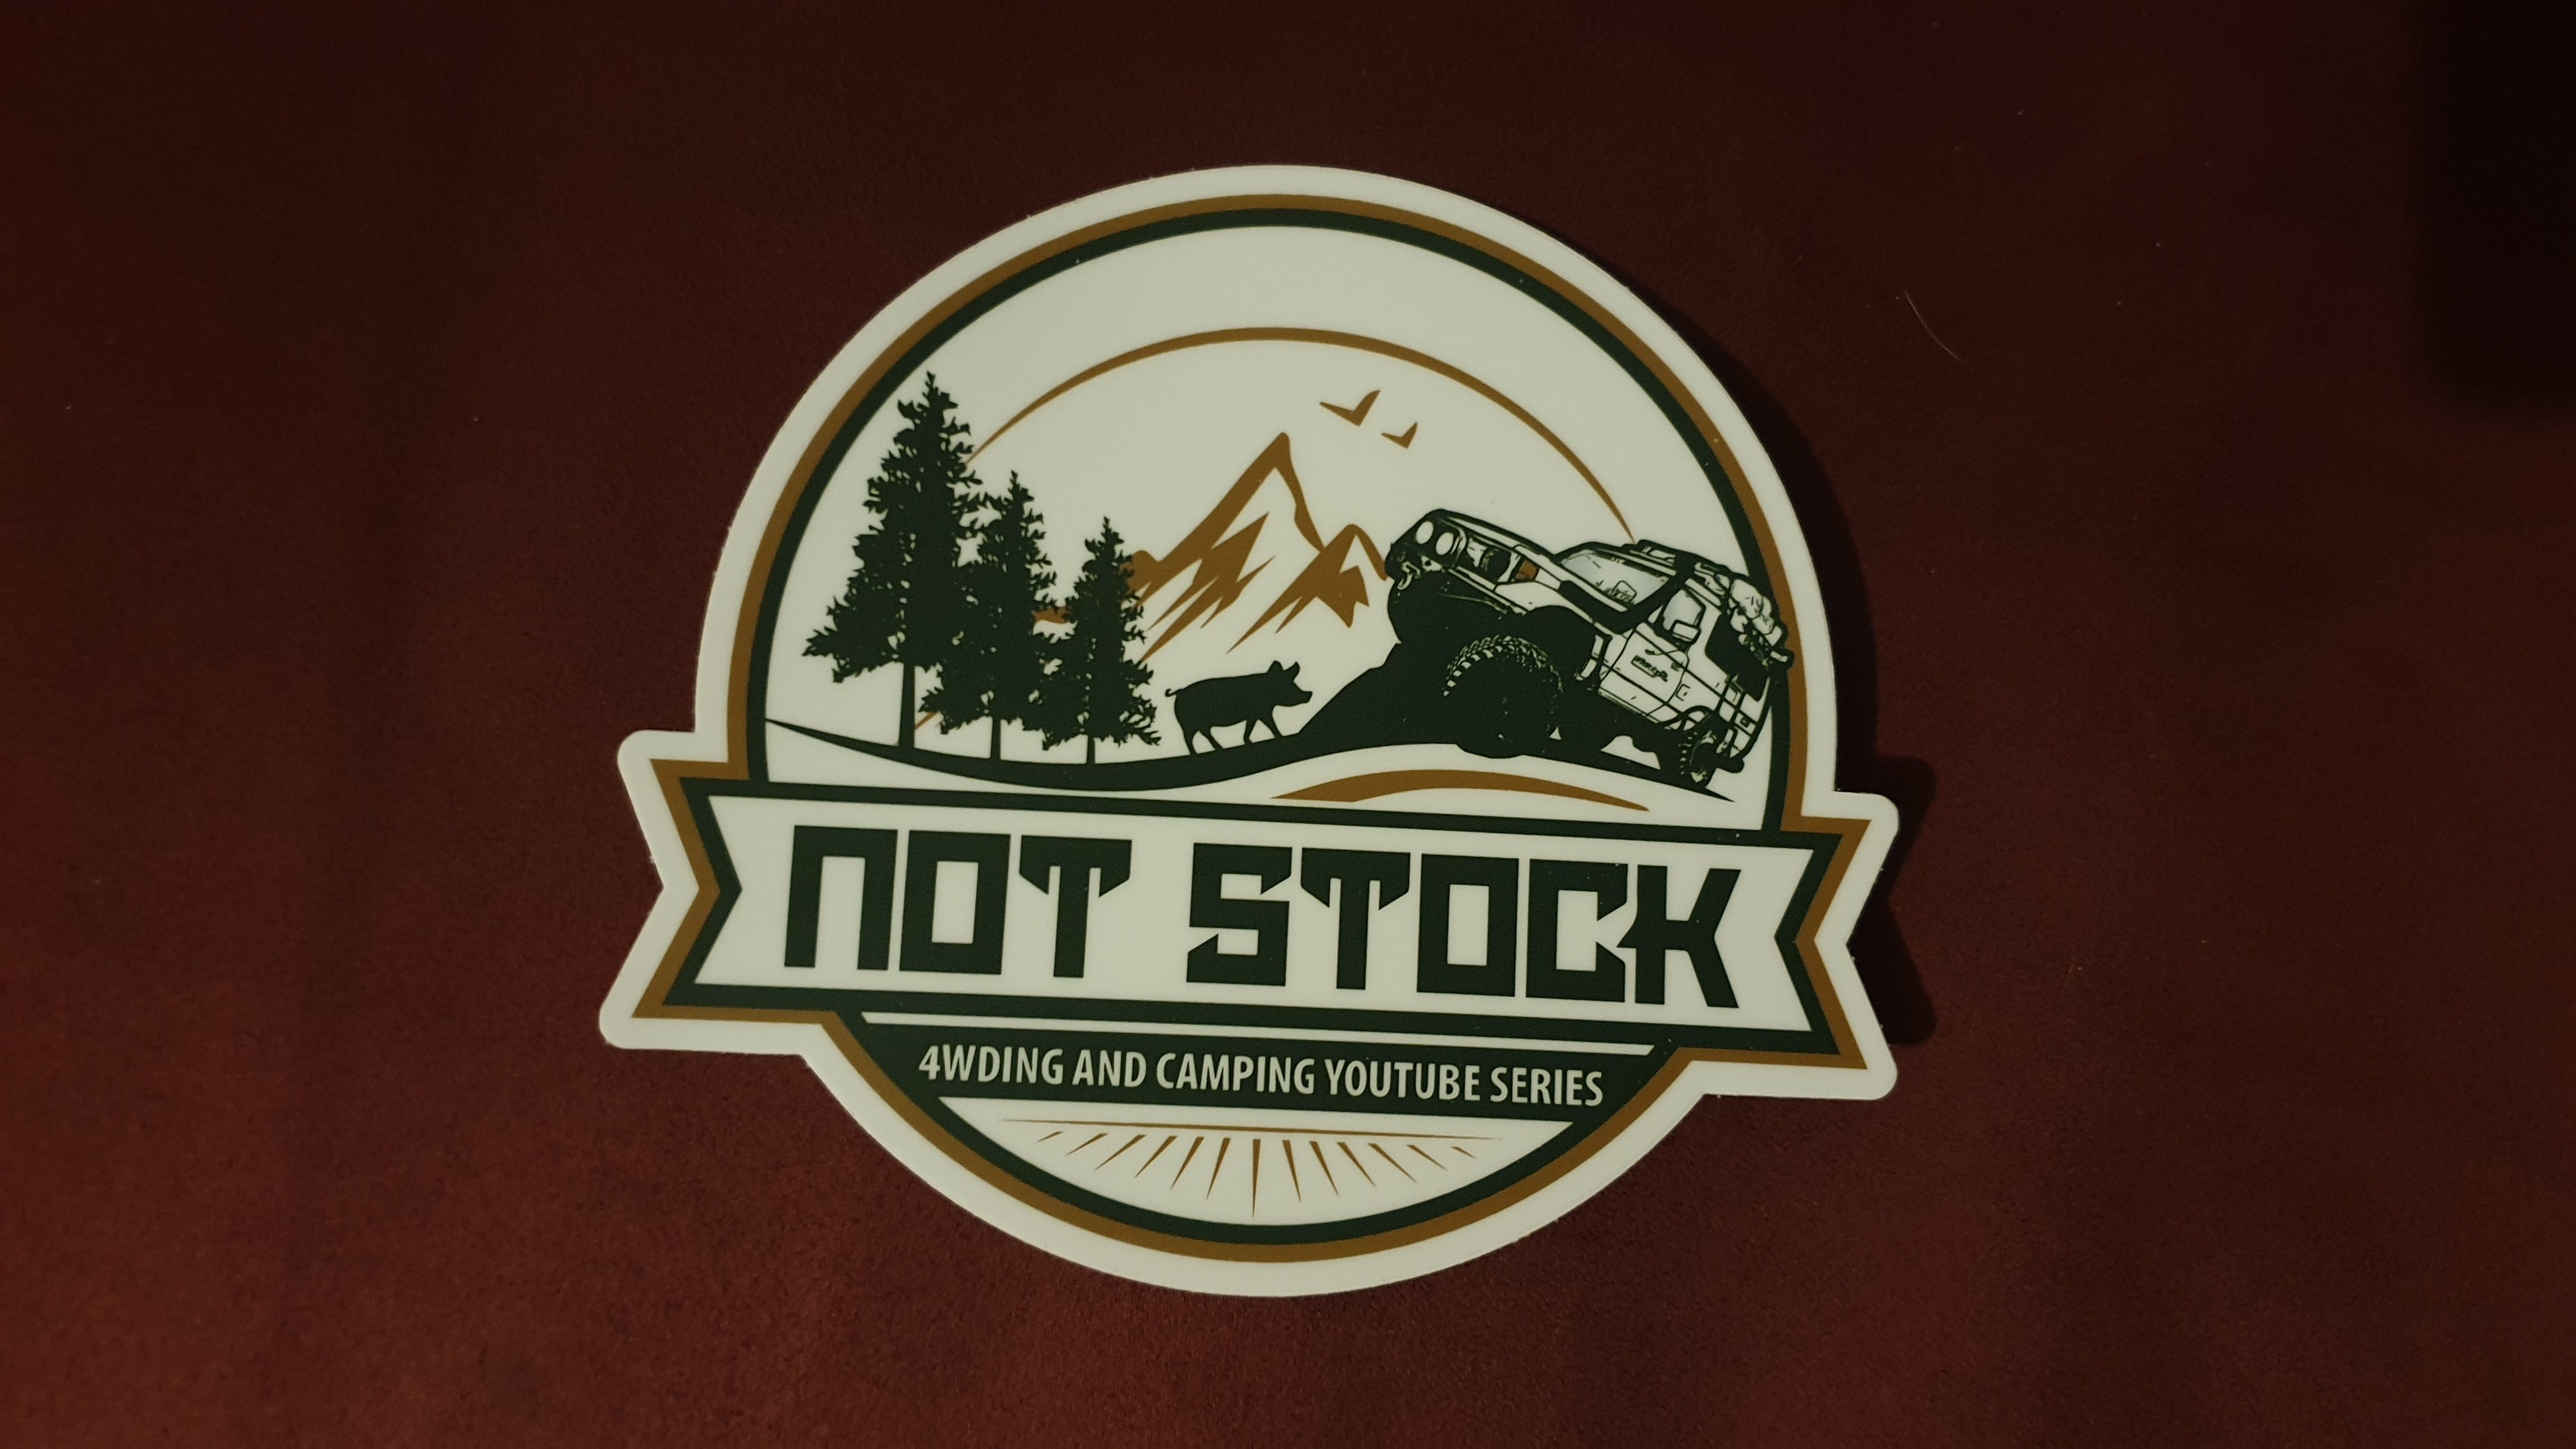 Not Stock Stickers